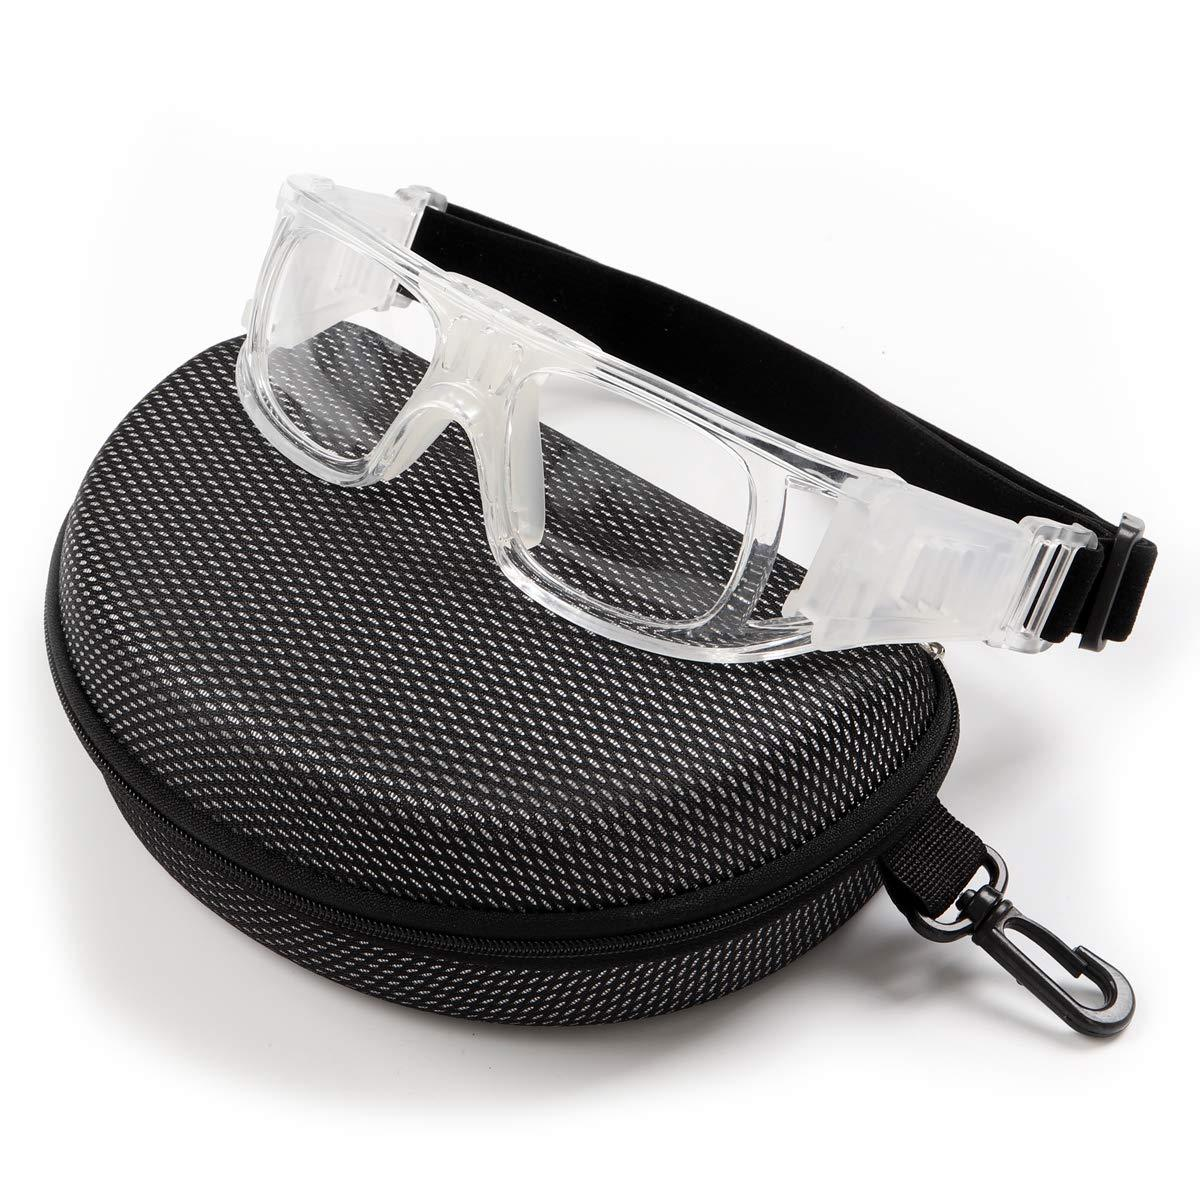 60% OFF-Sports Protective Eyewear Goggles Eye Safety Glasses